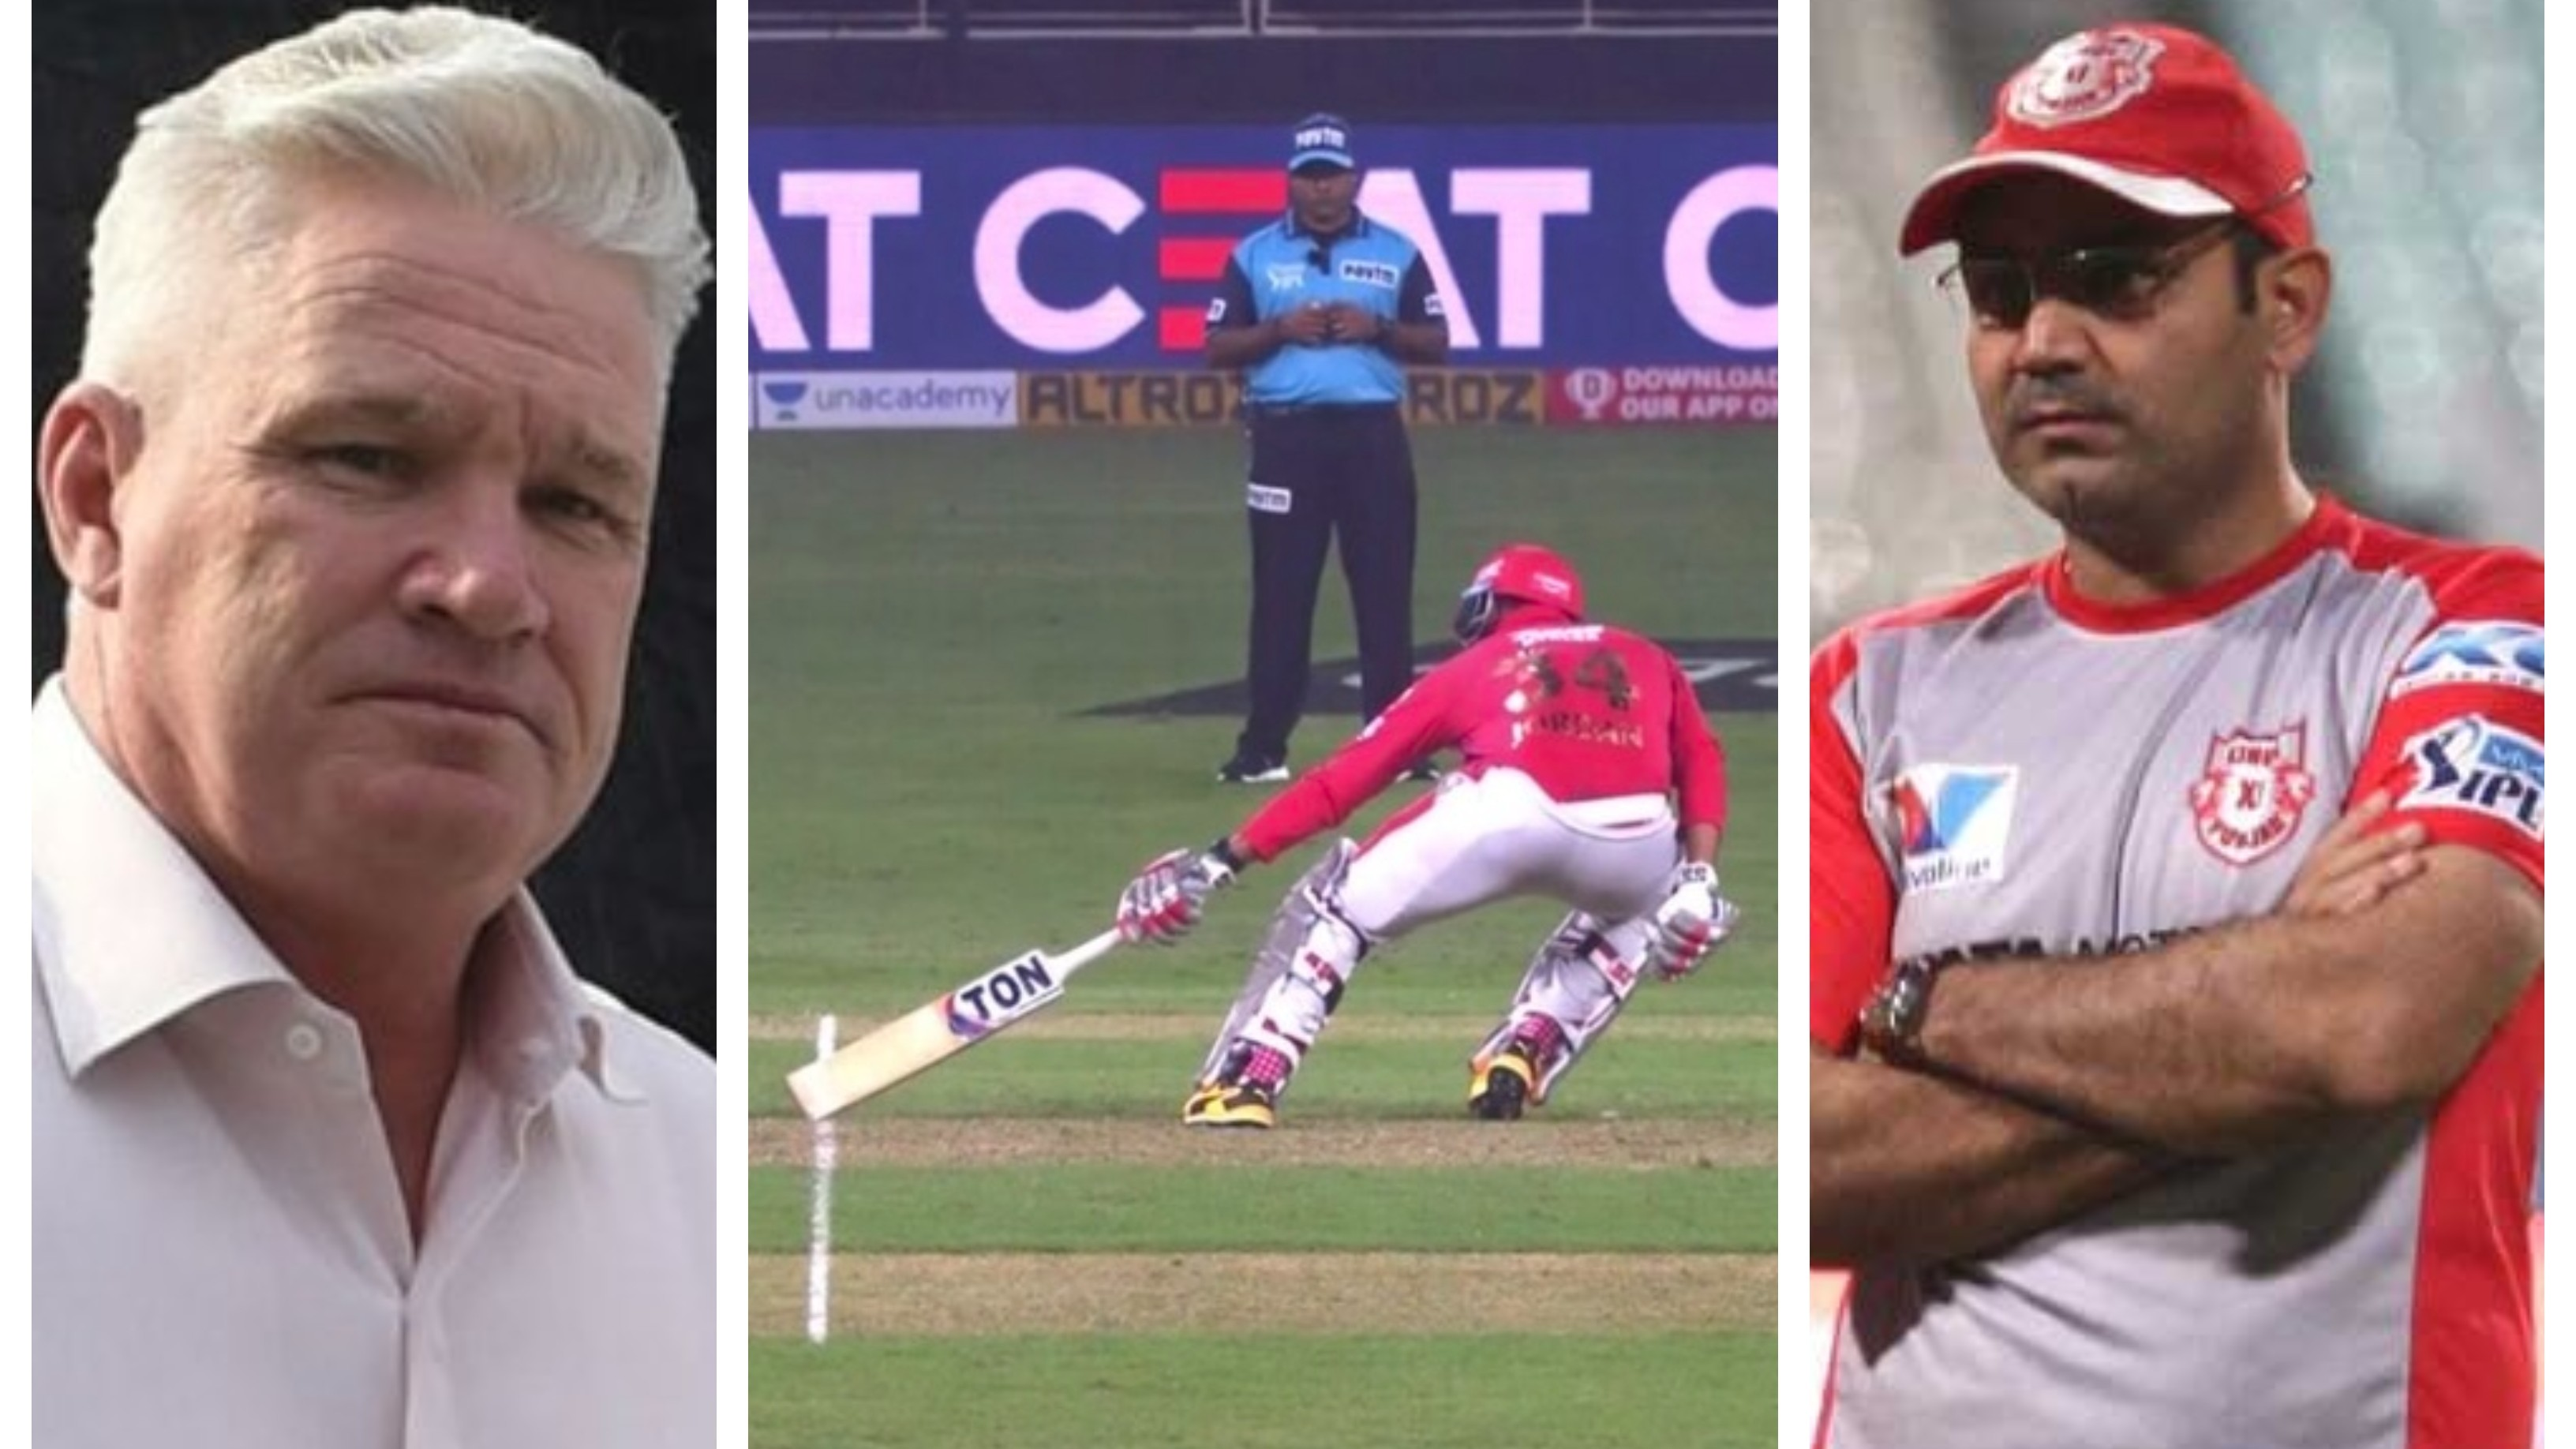 IPL 2020: Cricket fraternity reacts as umpire's wrong call on short run cost KXIP the match versus DC